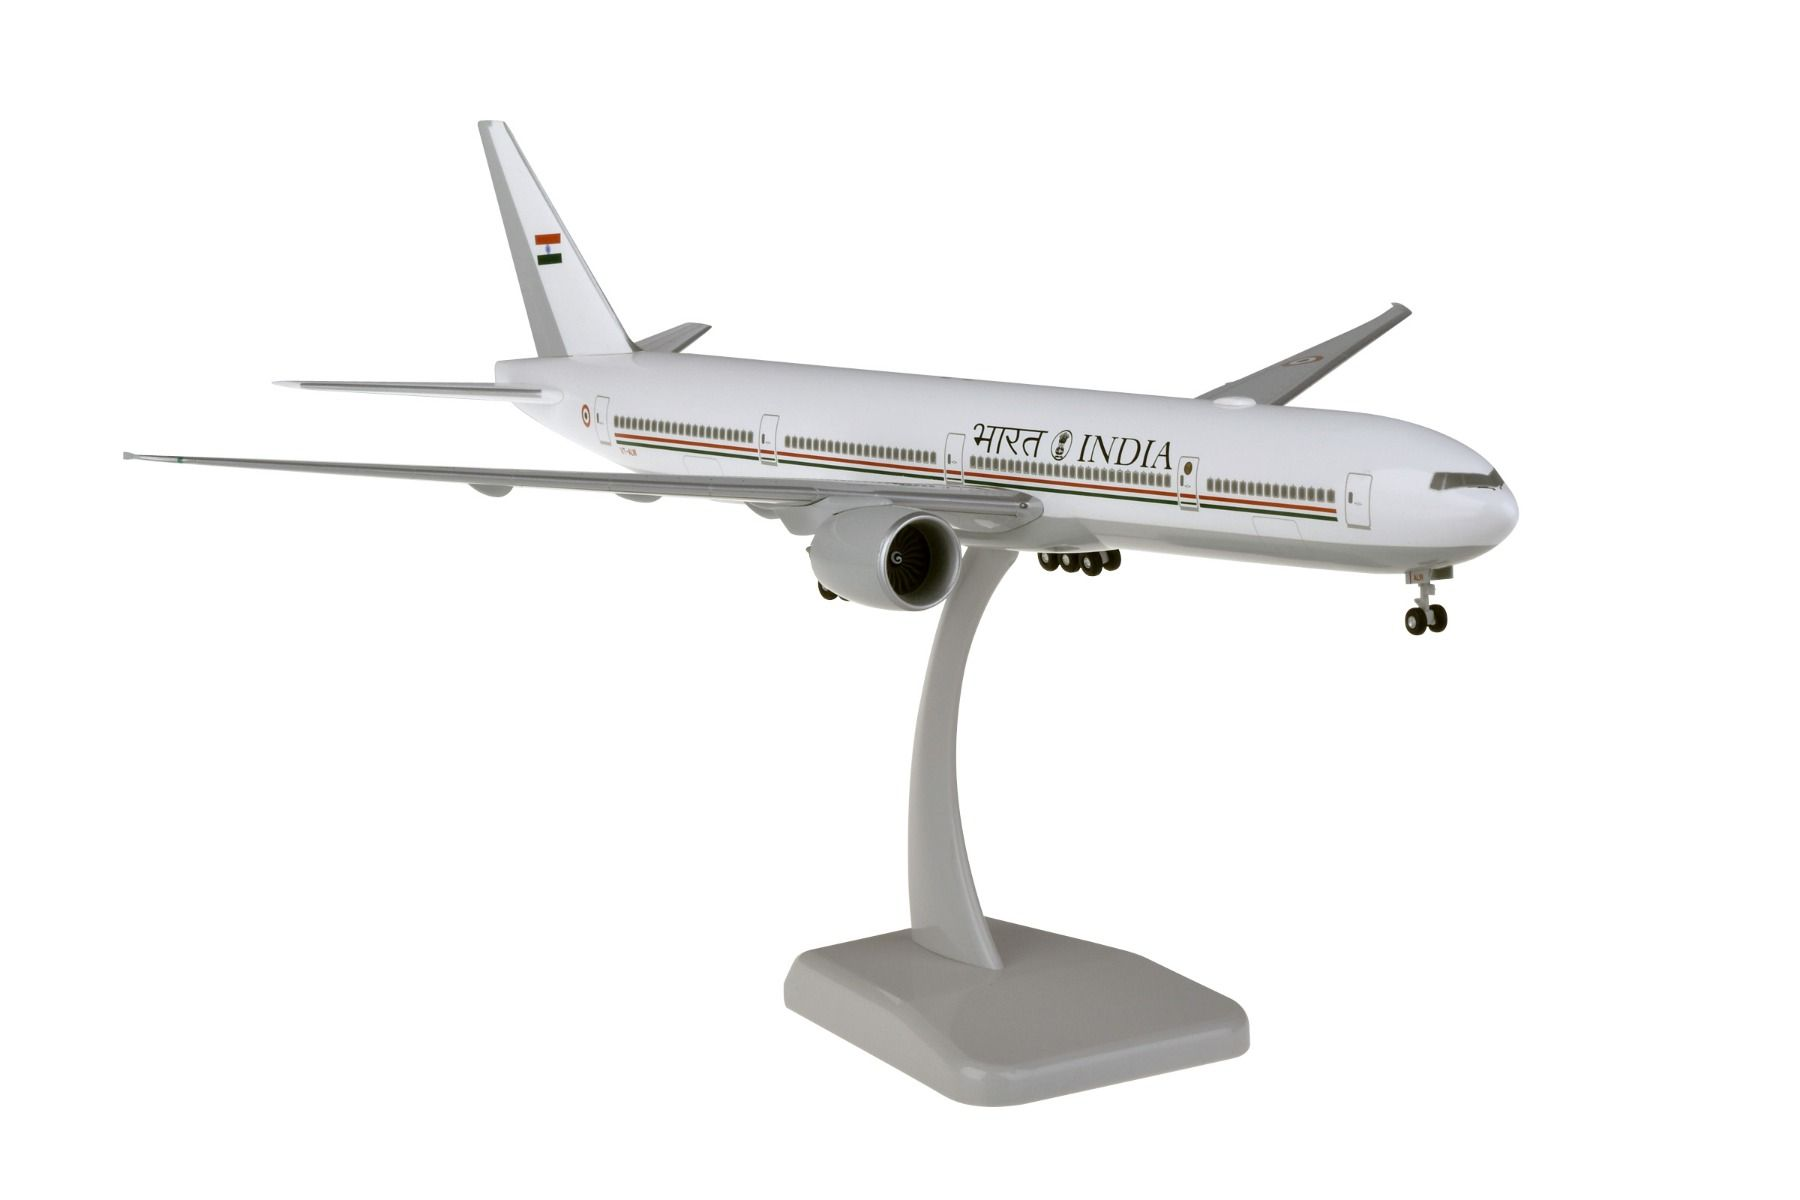 Indian Air Force 777-300ER 1/200 REG#VT-ALW With Gear (1:200)